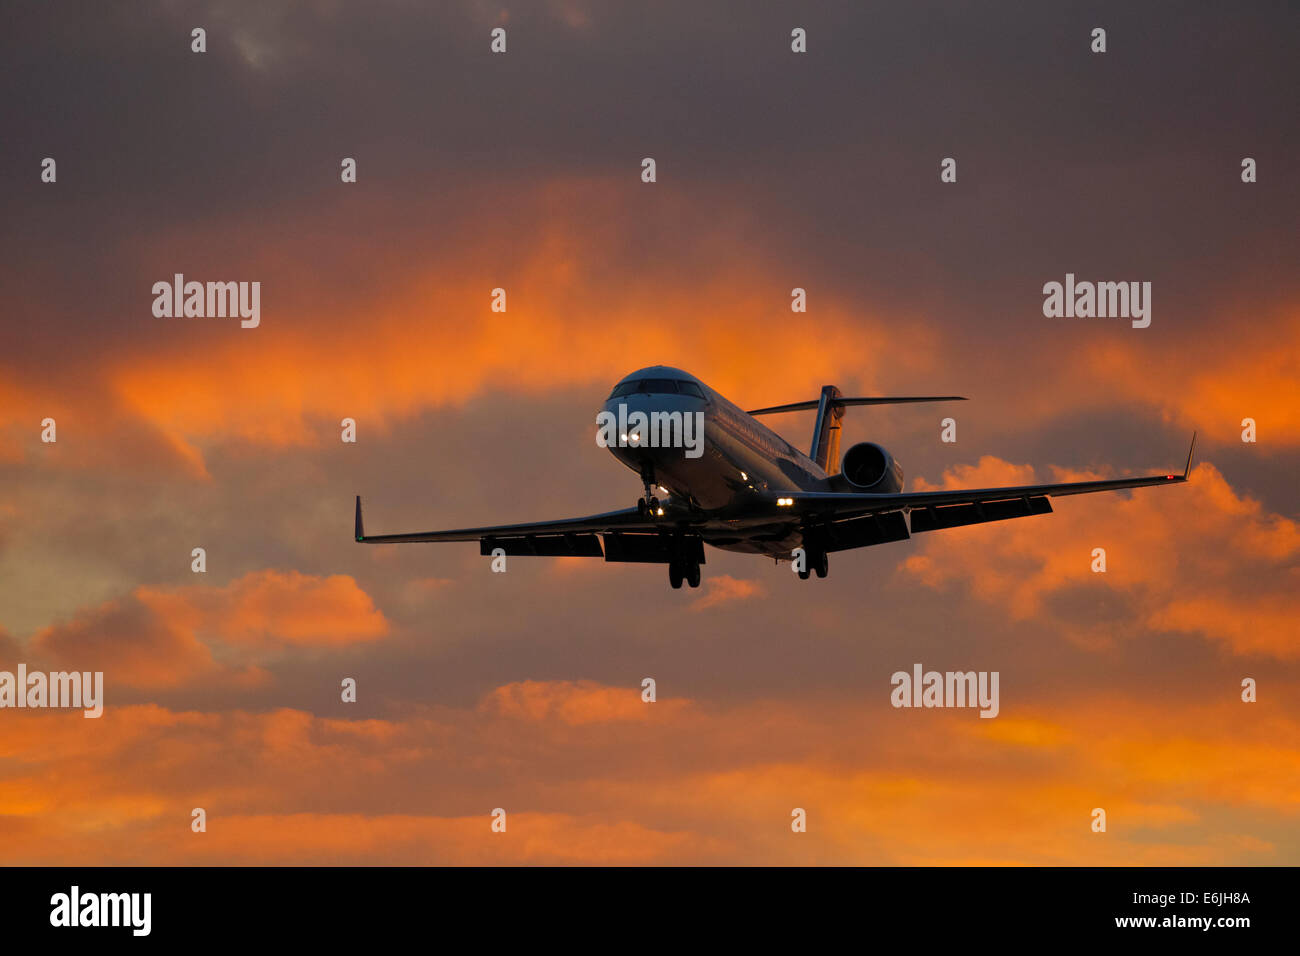 Commercial airliner United Express Bombardier jet on final approach for landing-Victoria, British Columbia, Canada. - Stock Image